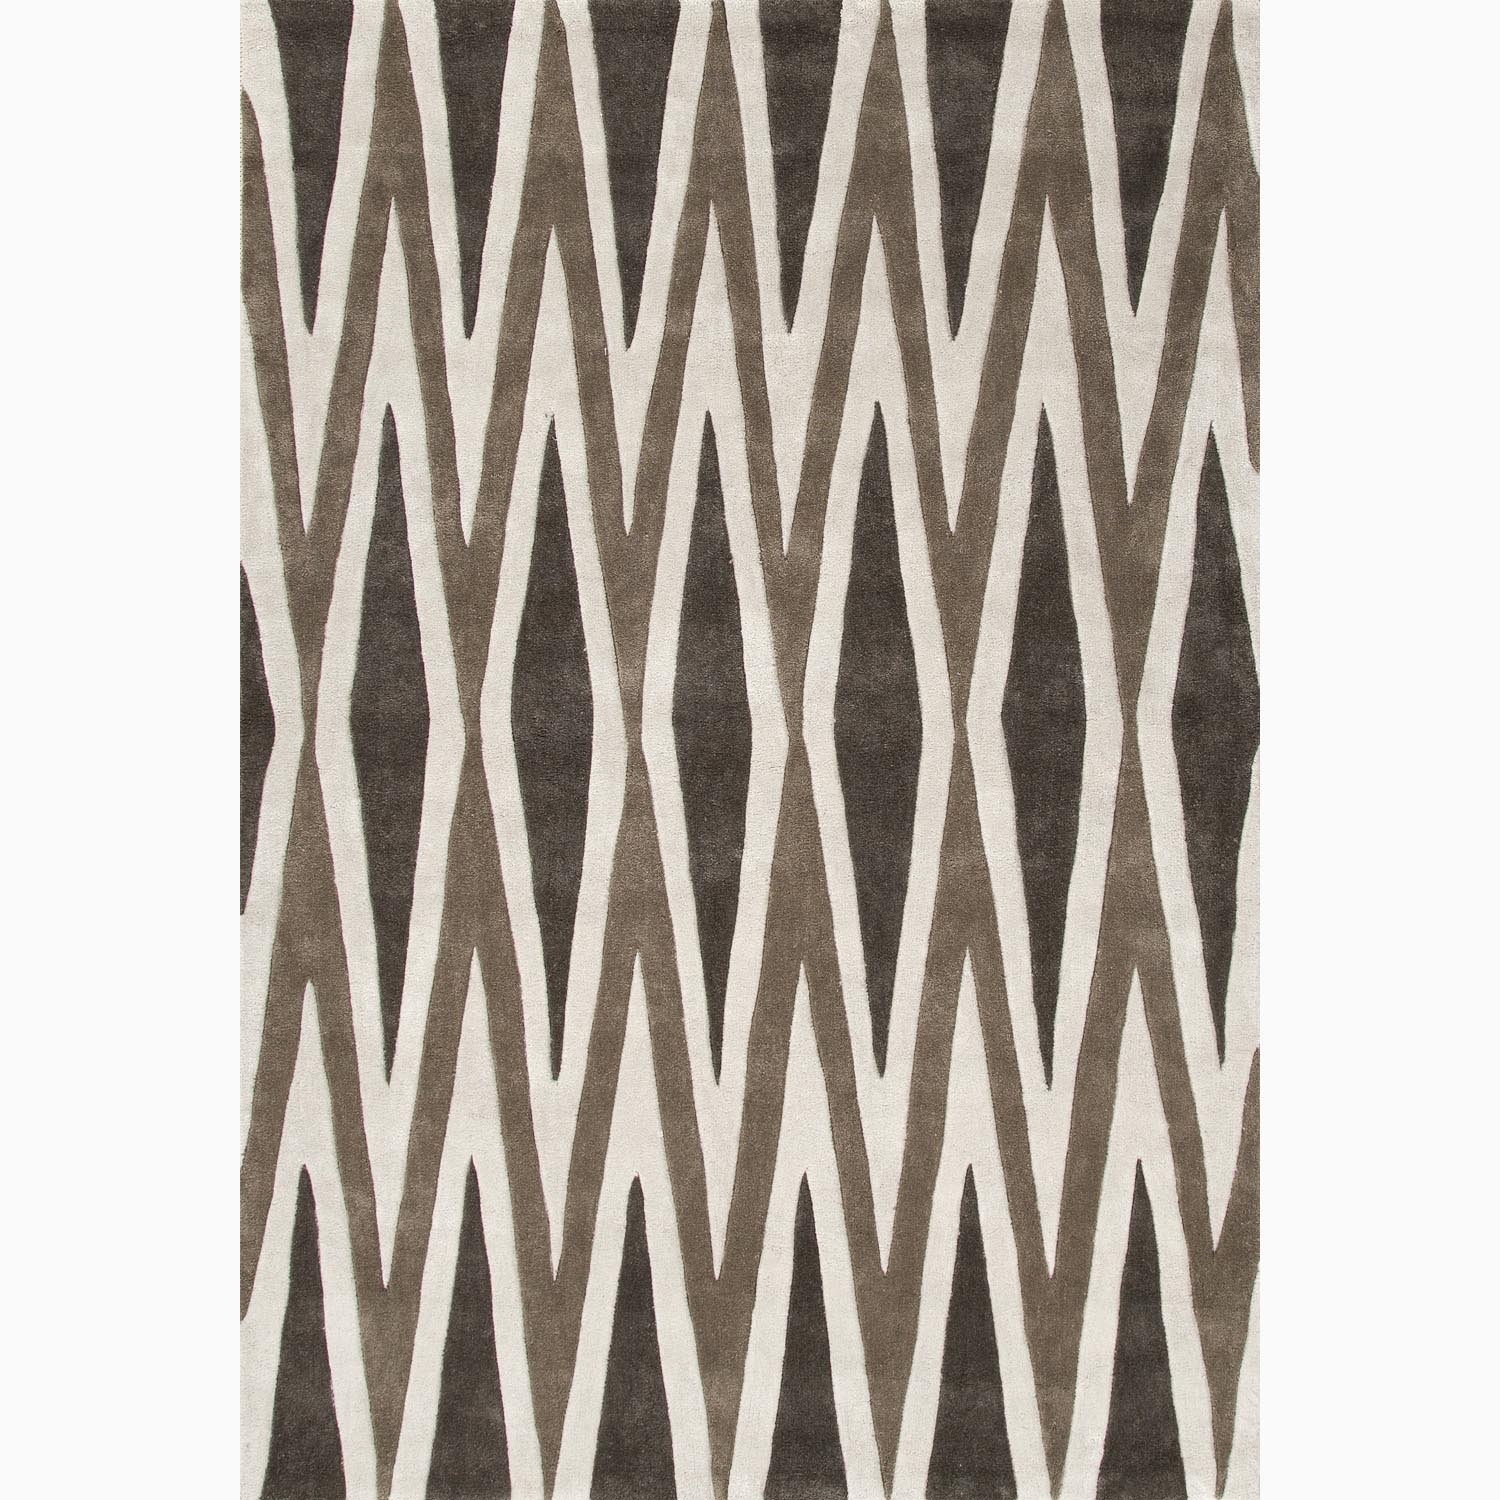 Handmade Geometric Pattern Brown/ Ivory Polyester Rug (7'6 x 9'6)